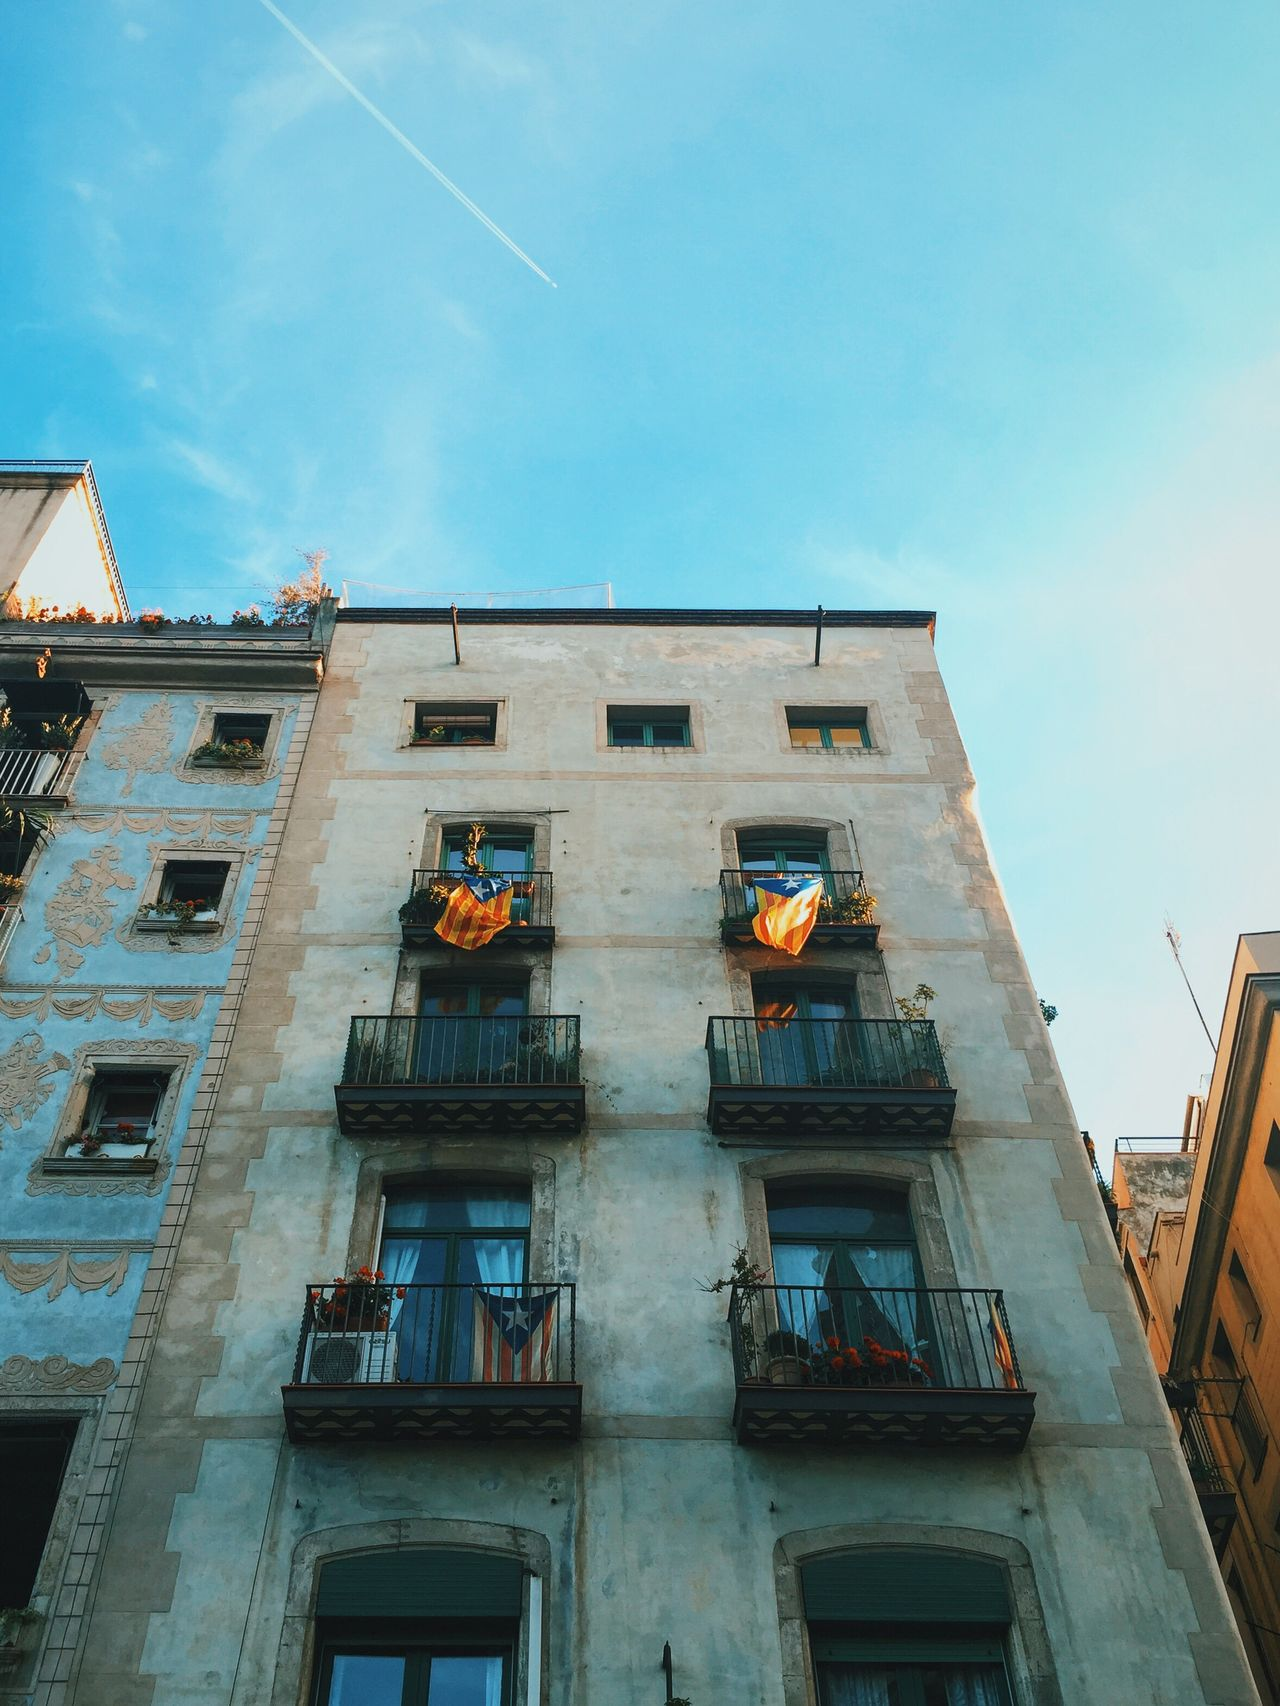 Rebels with balconies. Architecture Flags In The Wind  Catalunya Revolution Independence Balcony Traveling VSCO Wanderlust Vscocam